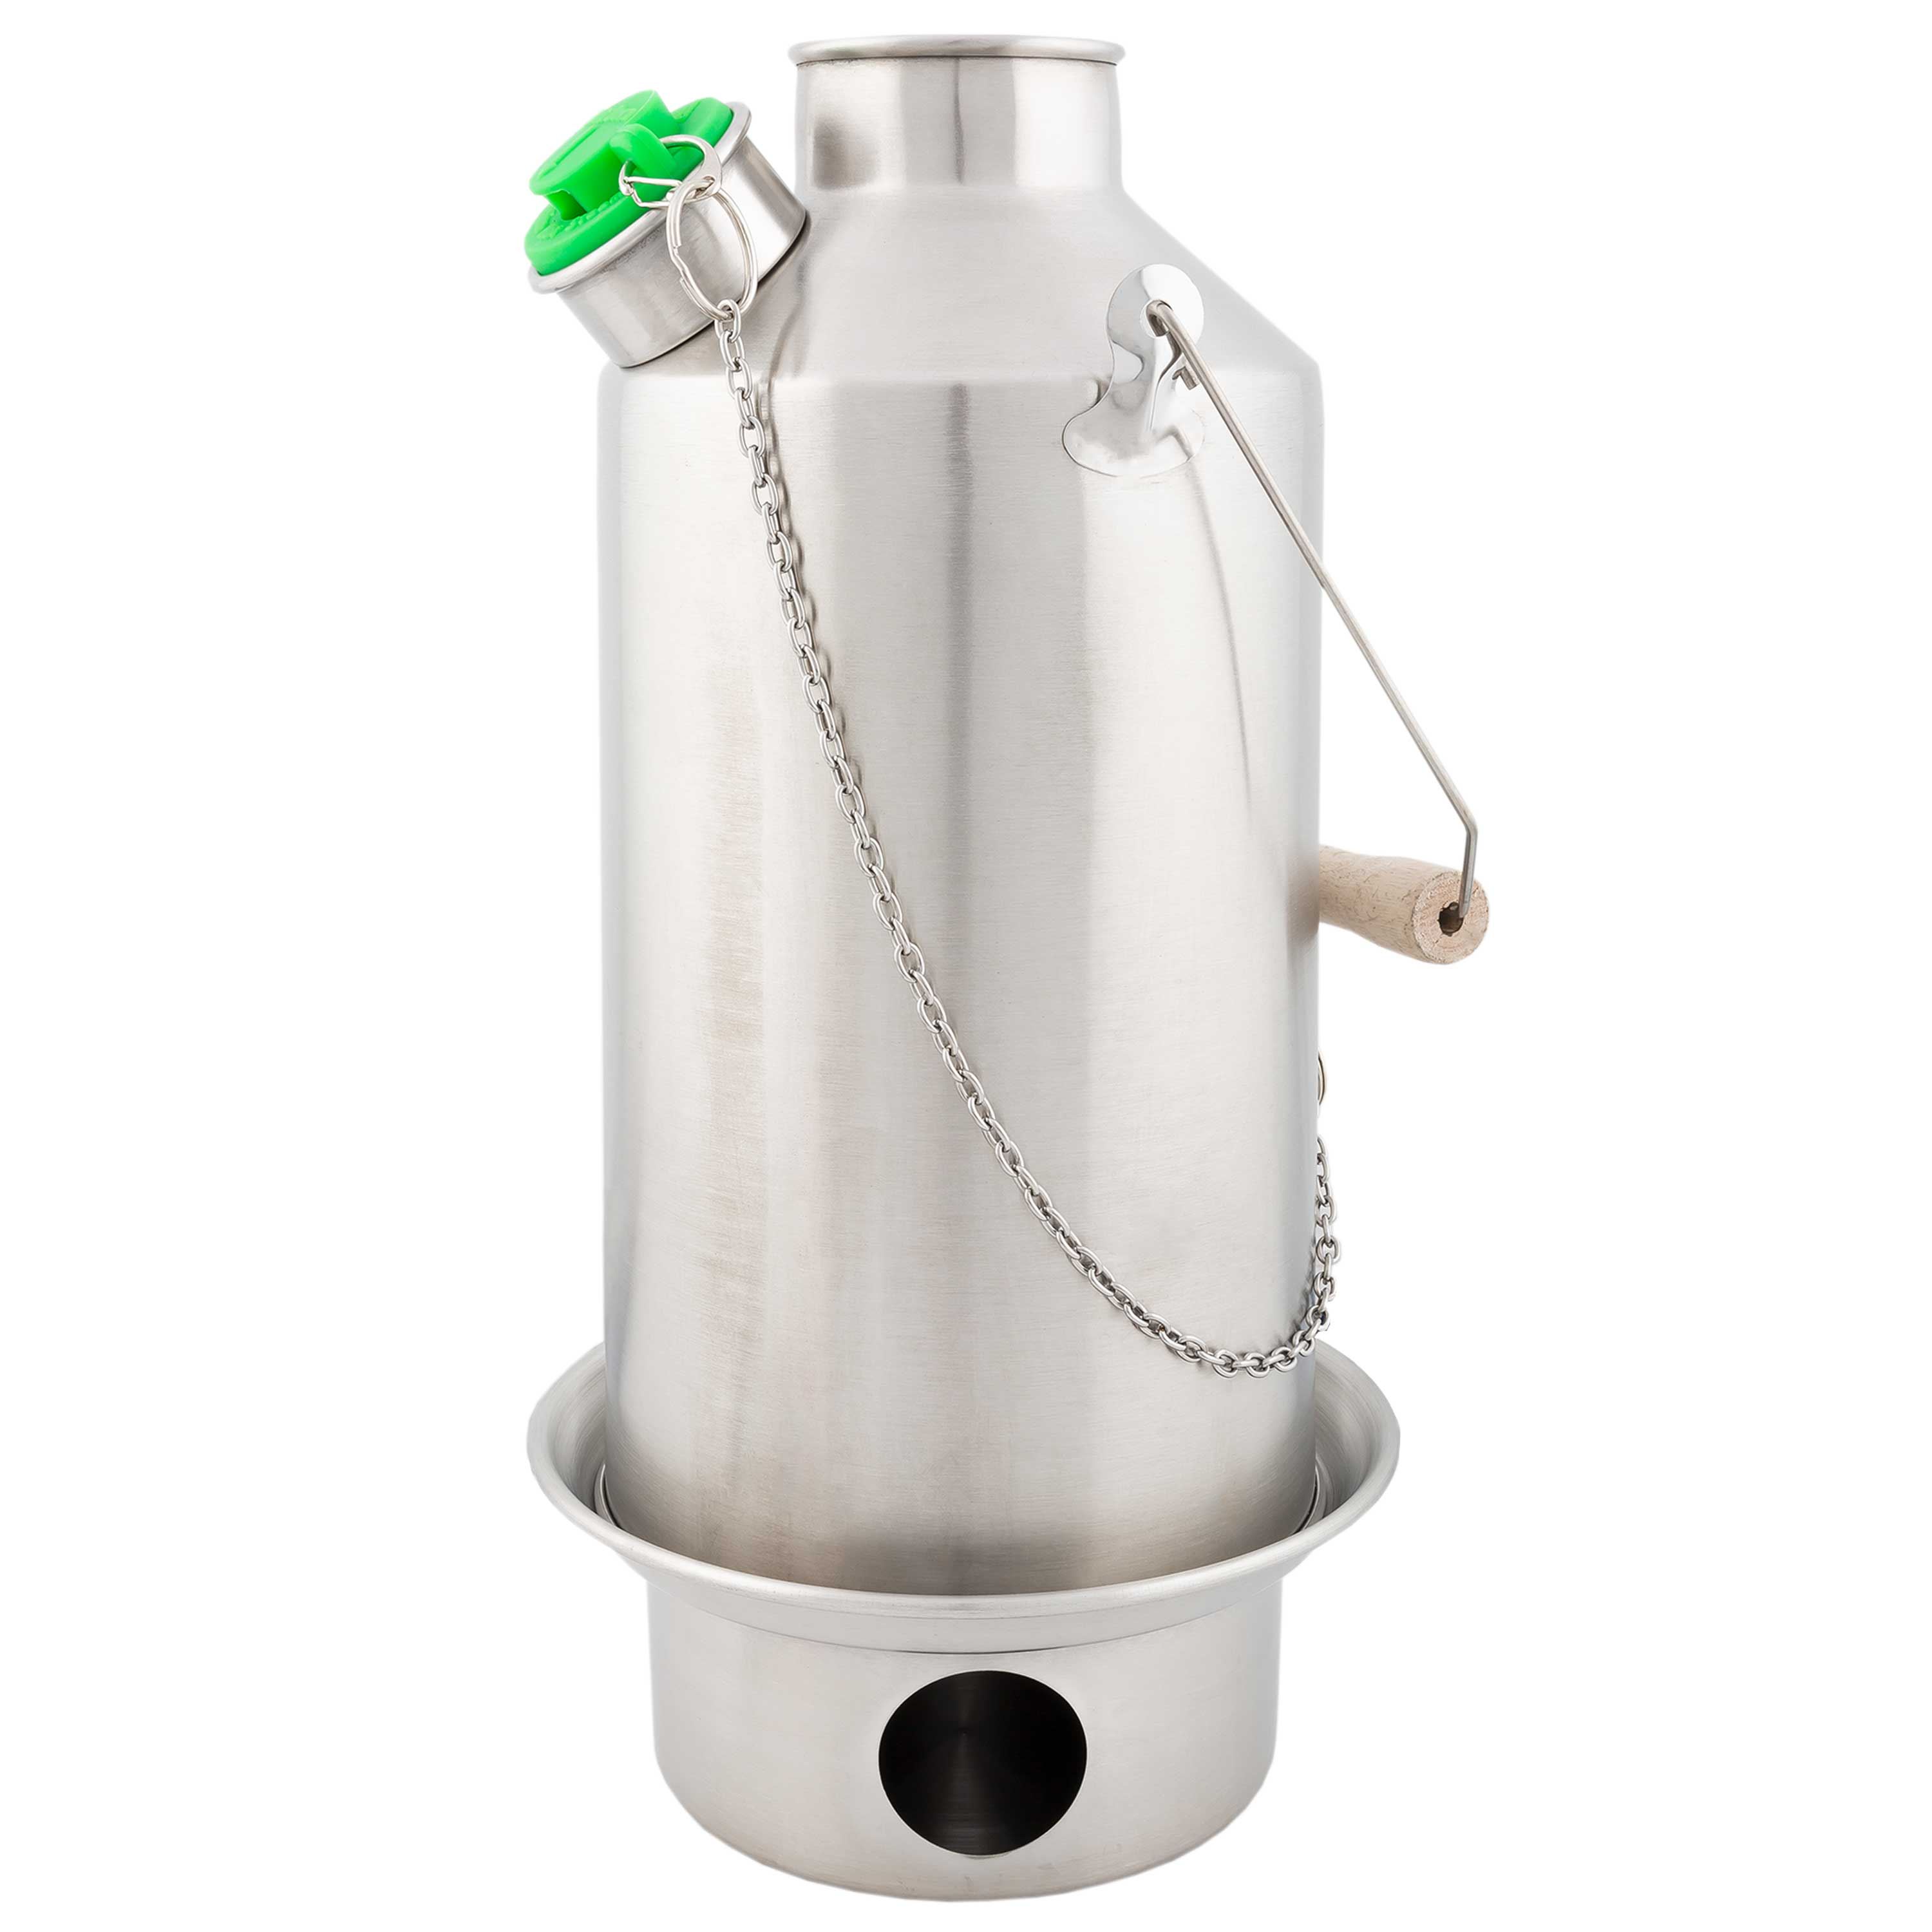 Kelly Kettle Base Camp Stainless Steel 1.6 L